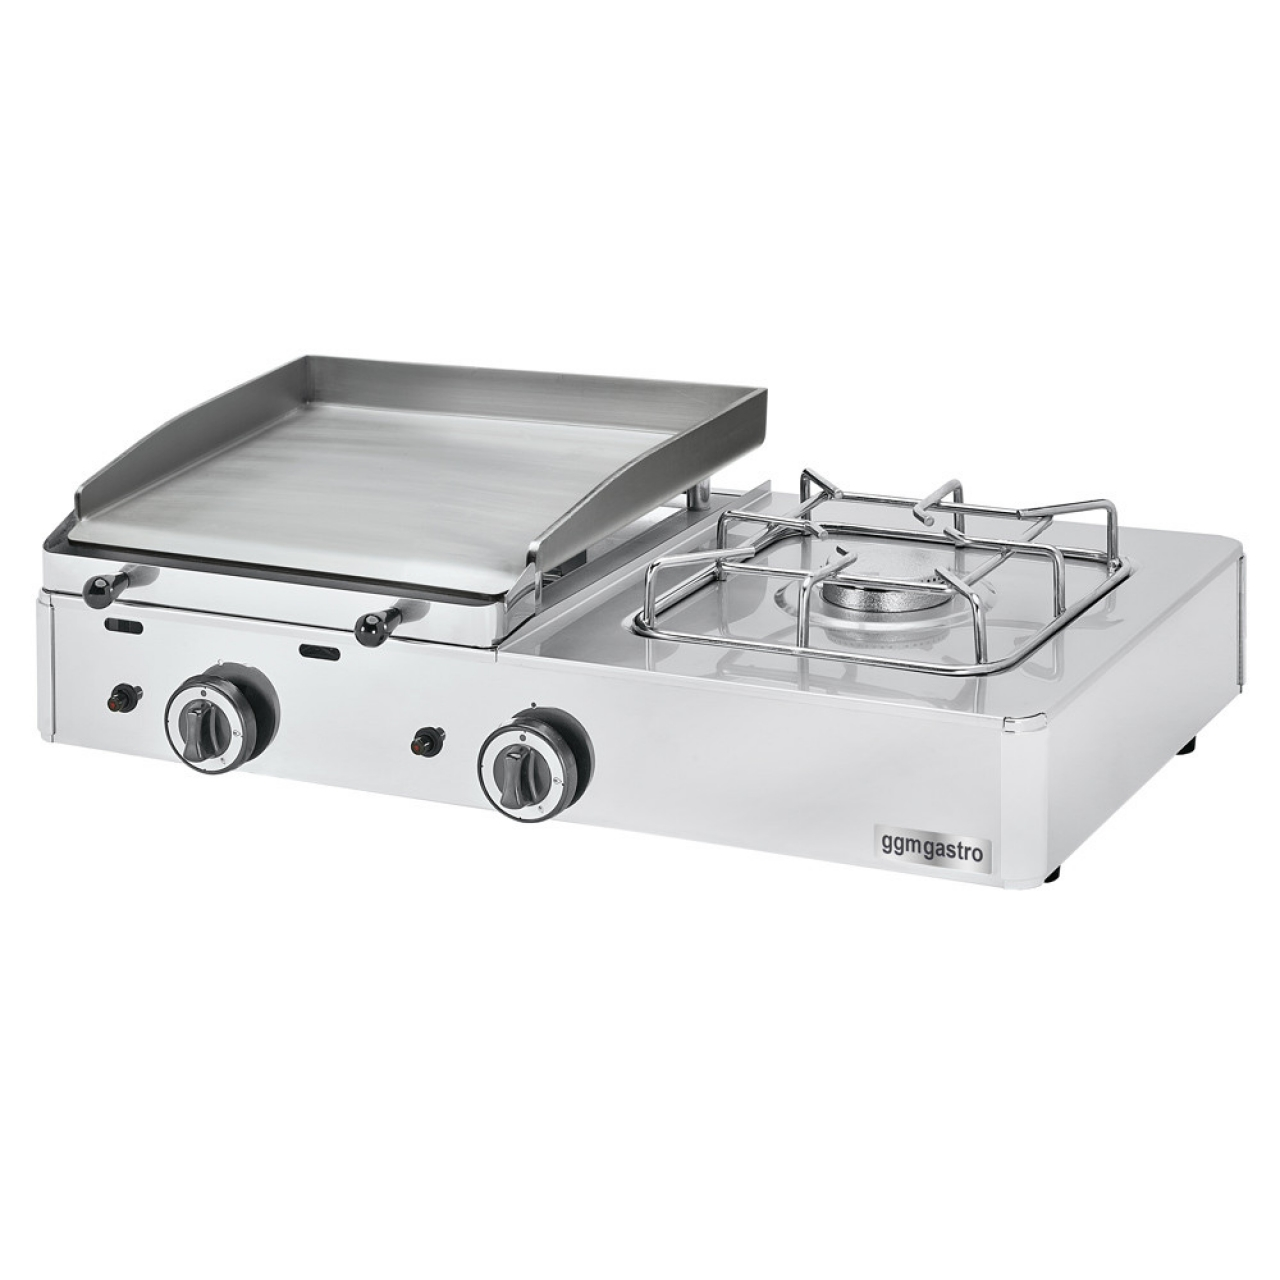 Gas stove - plate grill 0.82m